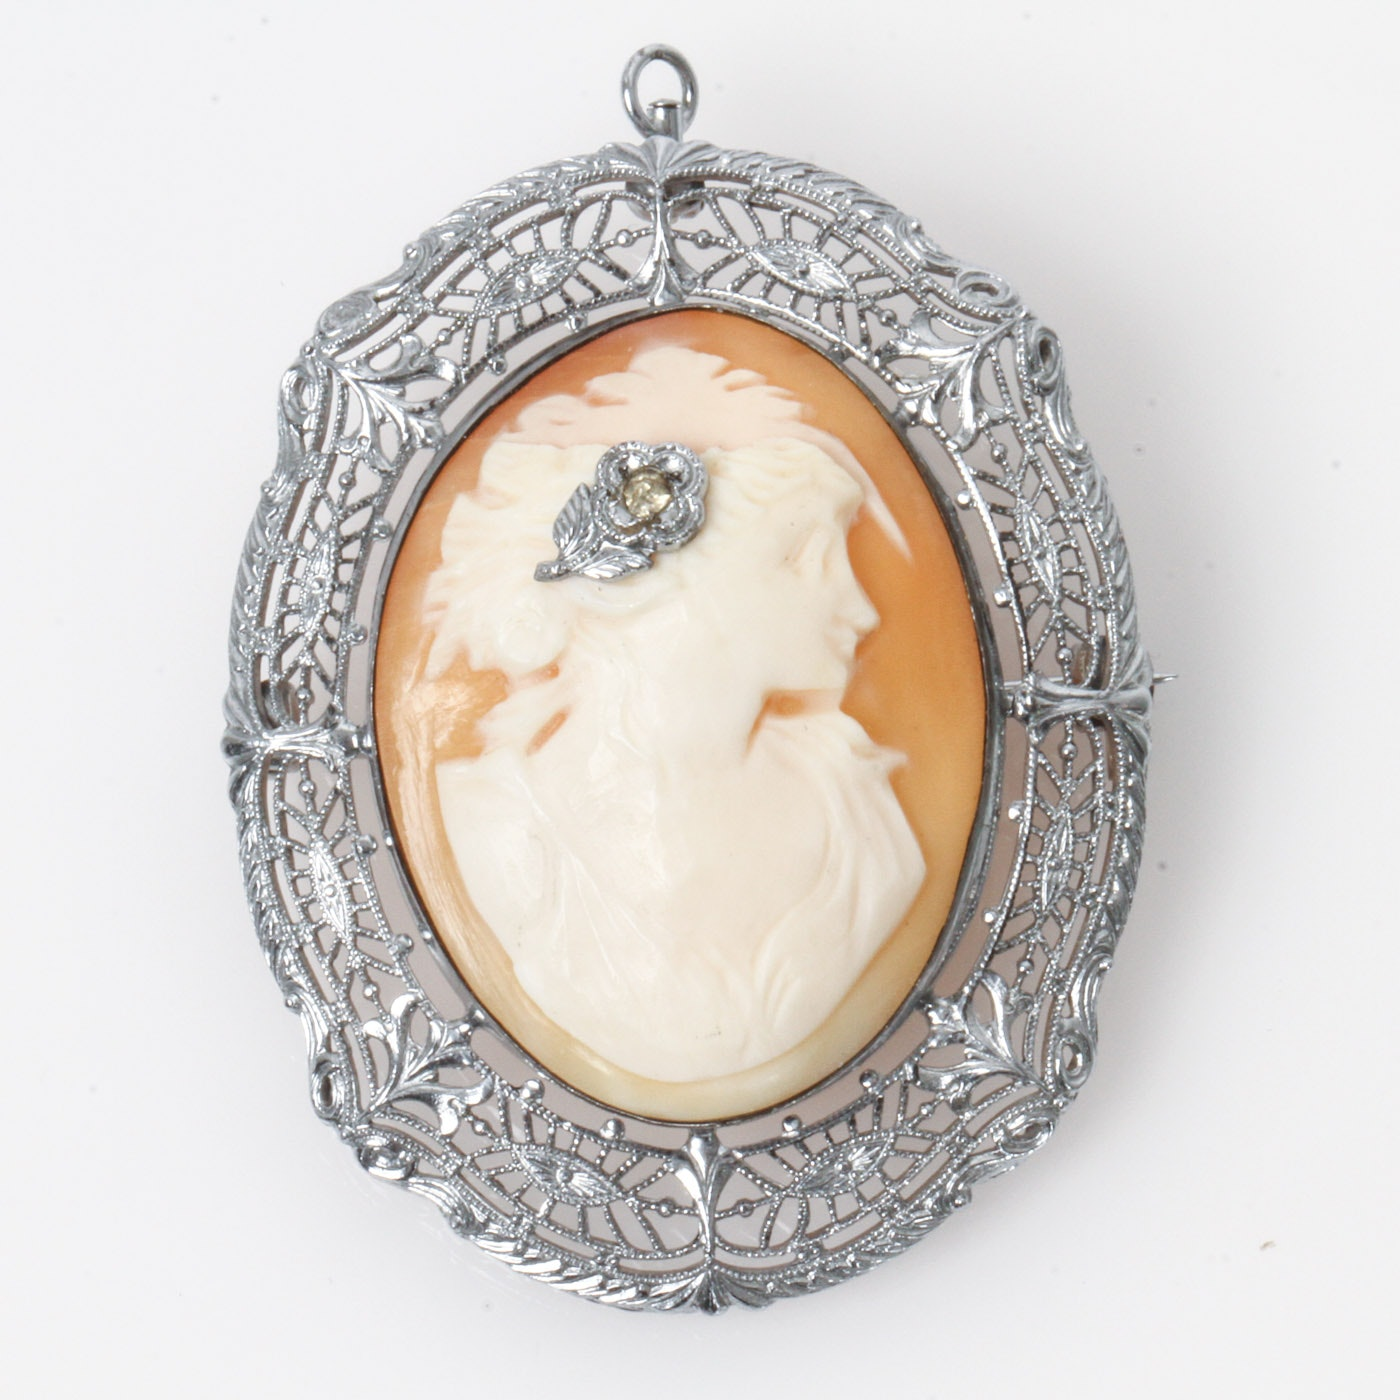 Vintage Art Deco Ostby & Barton Sterling Silver and Carved Shell en Habillé Cameo Pendant Brooch